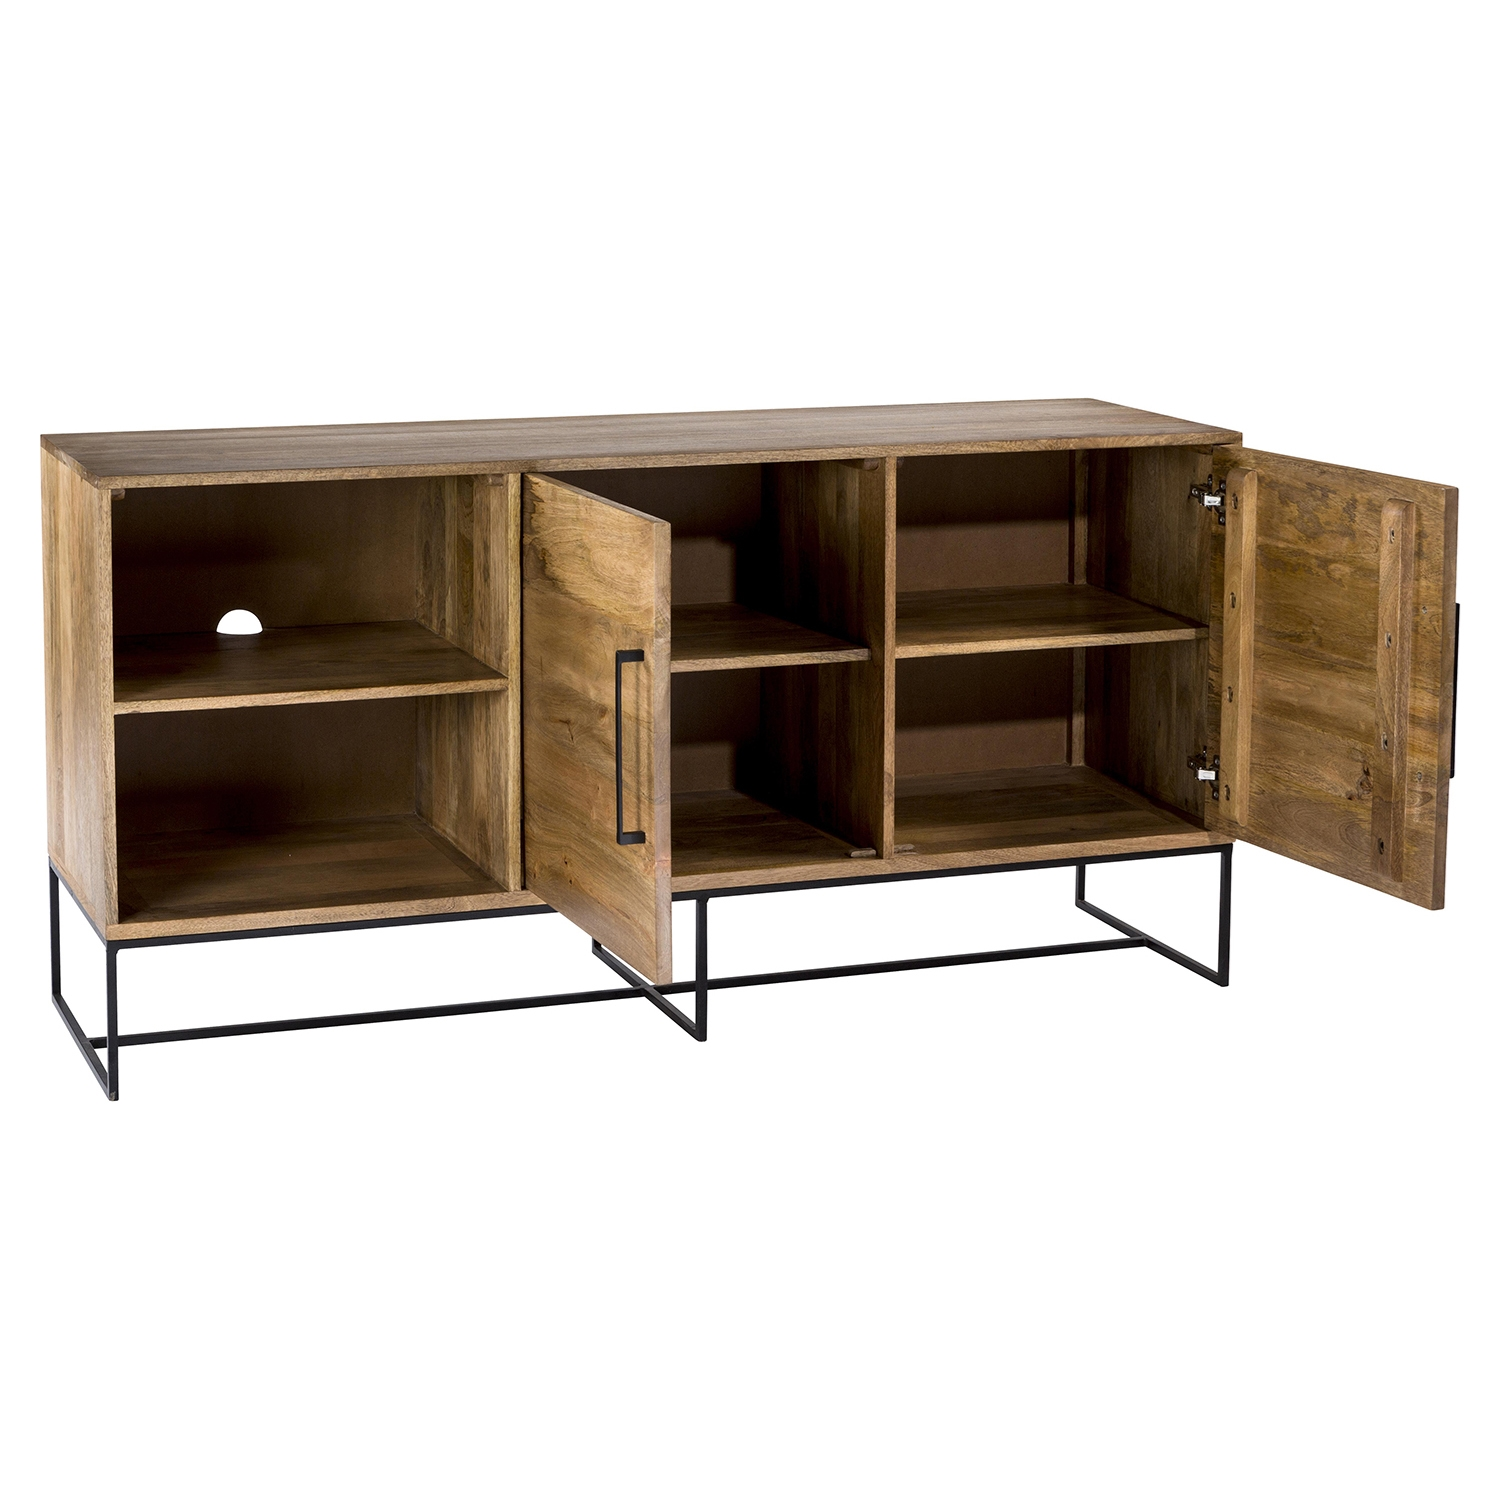 Colvin Entertainment Unit - Natural - MOES-SR-1029-24